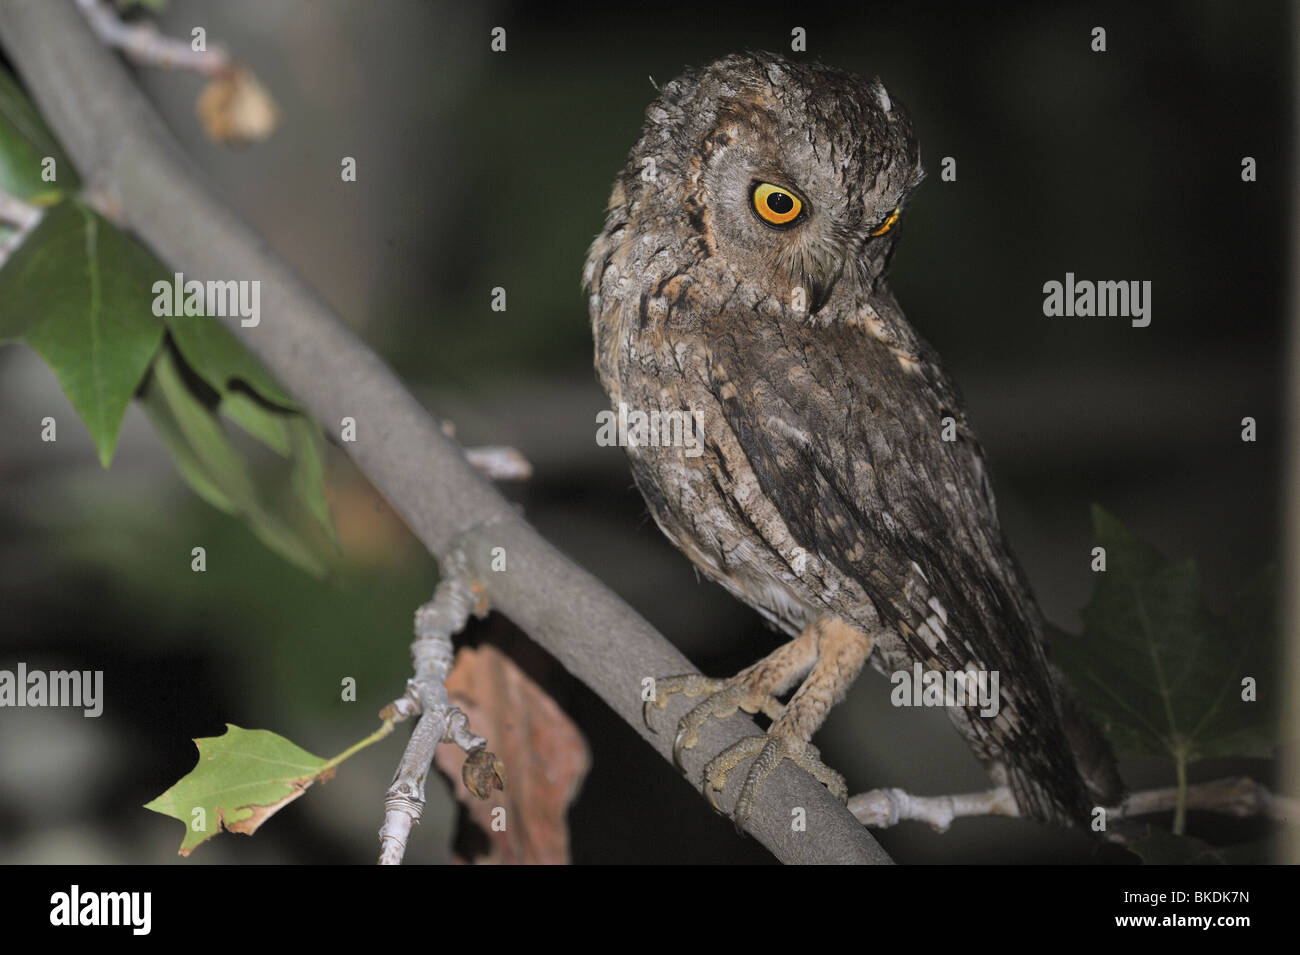 Eurasian scops owl on a branch at night - Stock Image